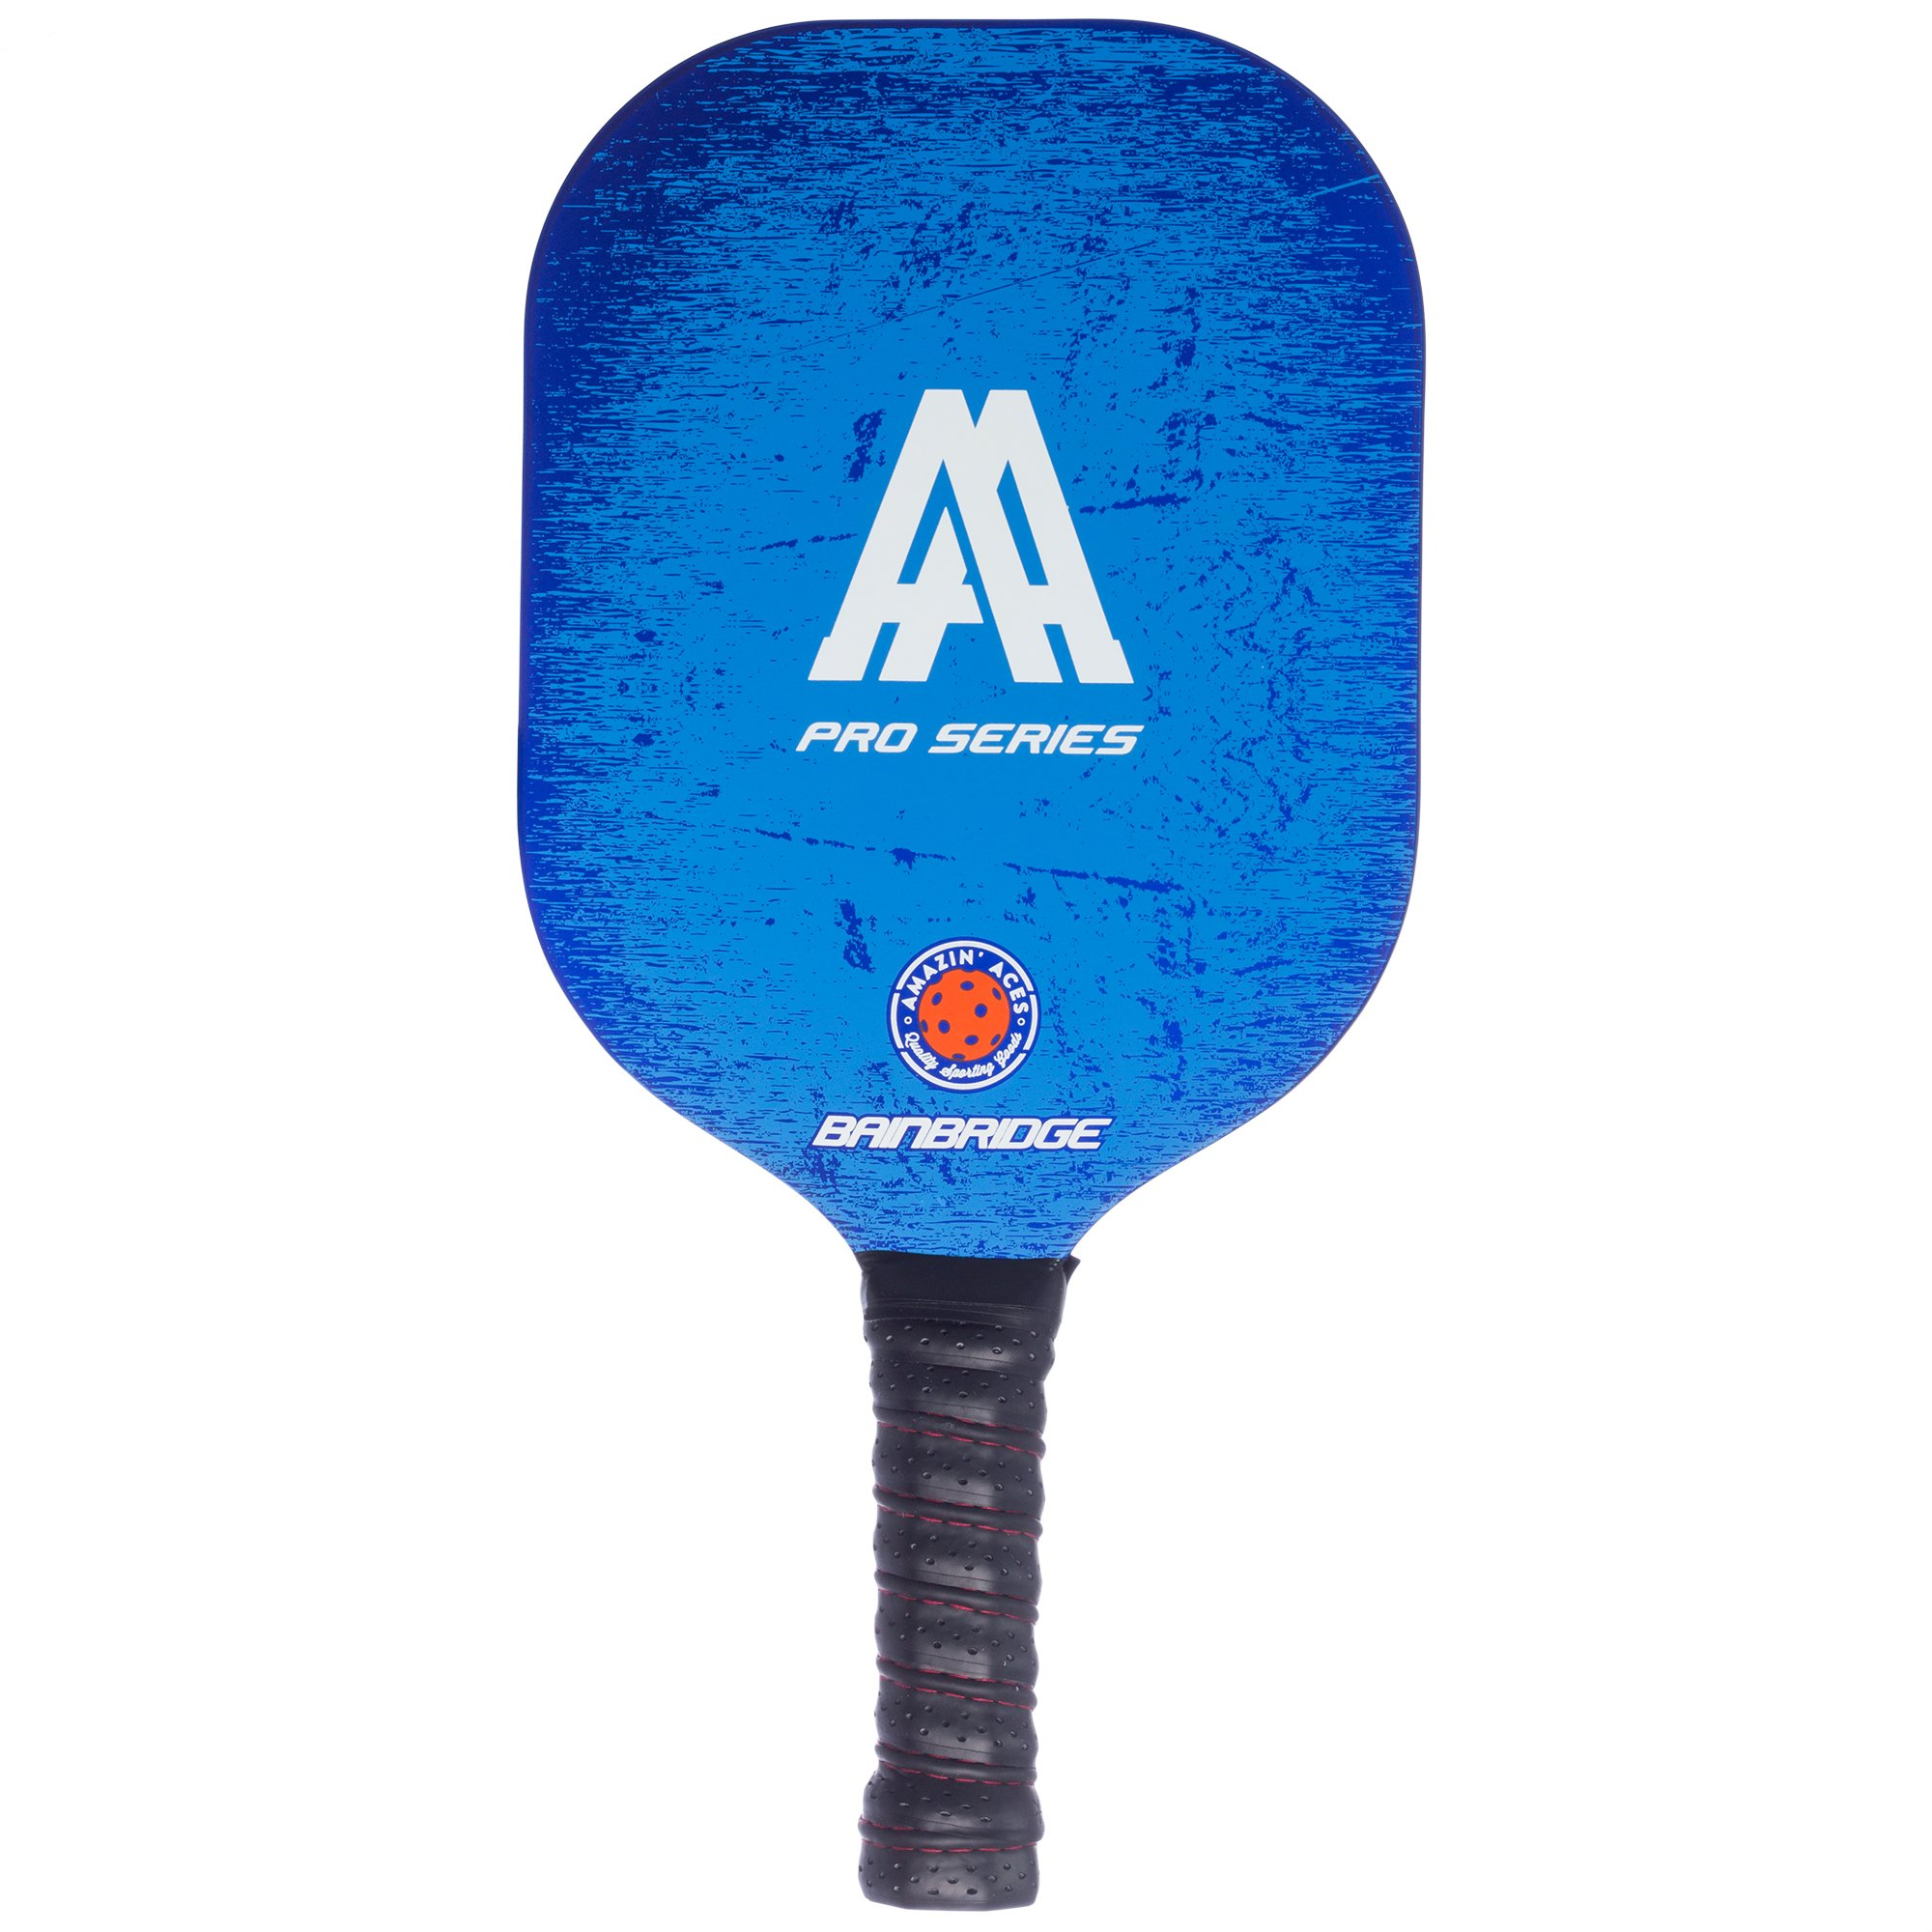 Amazin' Aces 'BAINBRIDGE' Pickleball Paddle (Pro Series) | Edgeless Composite Paddle | Aluminum Honeycomb Core With Graphite & Fiberglass Rimless Face | Includes Racket Cover With Shoulder Strap